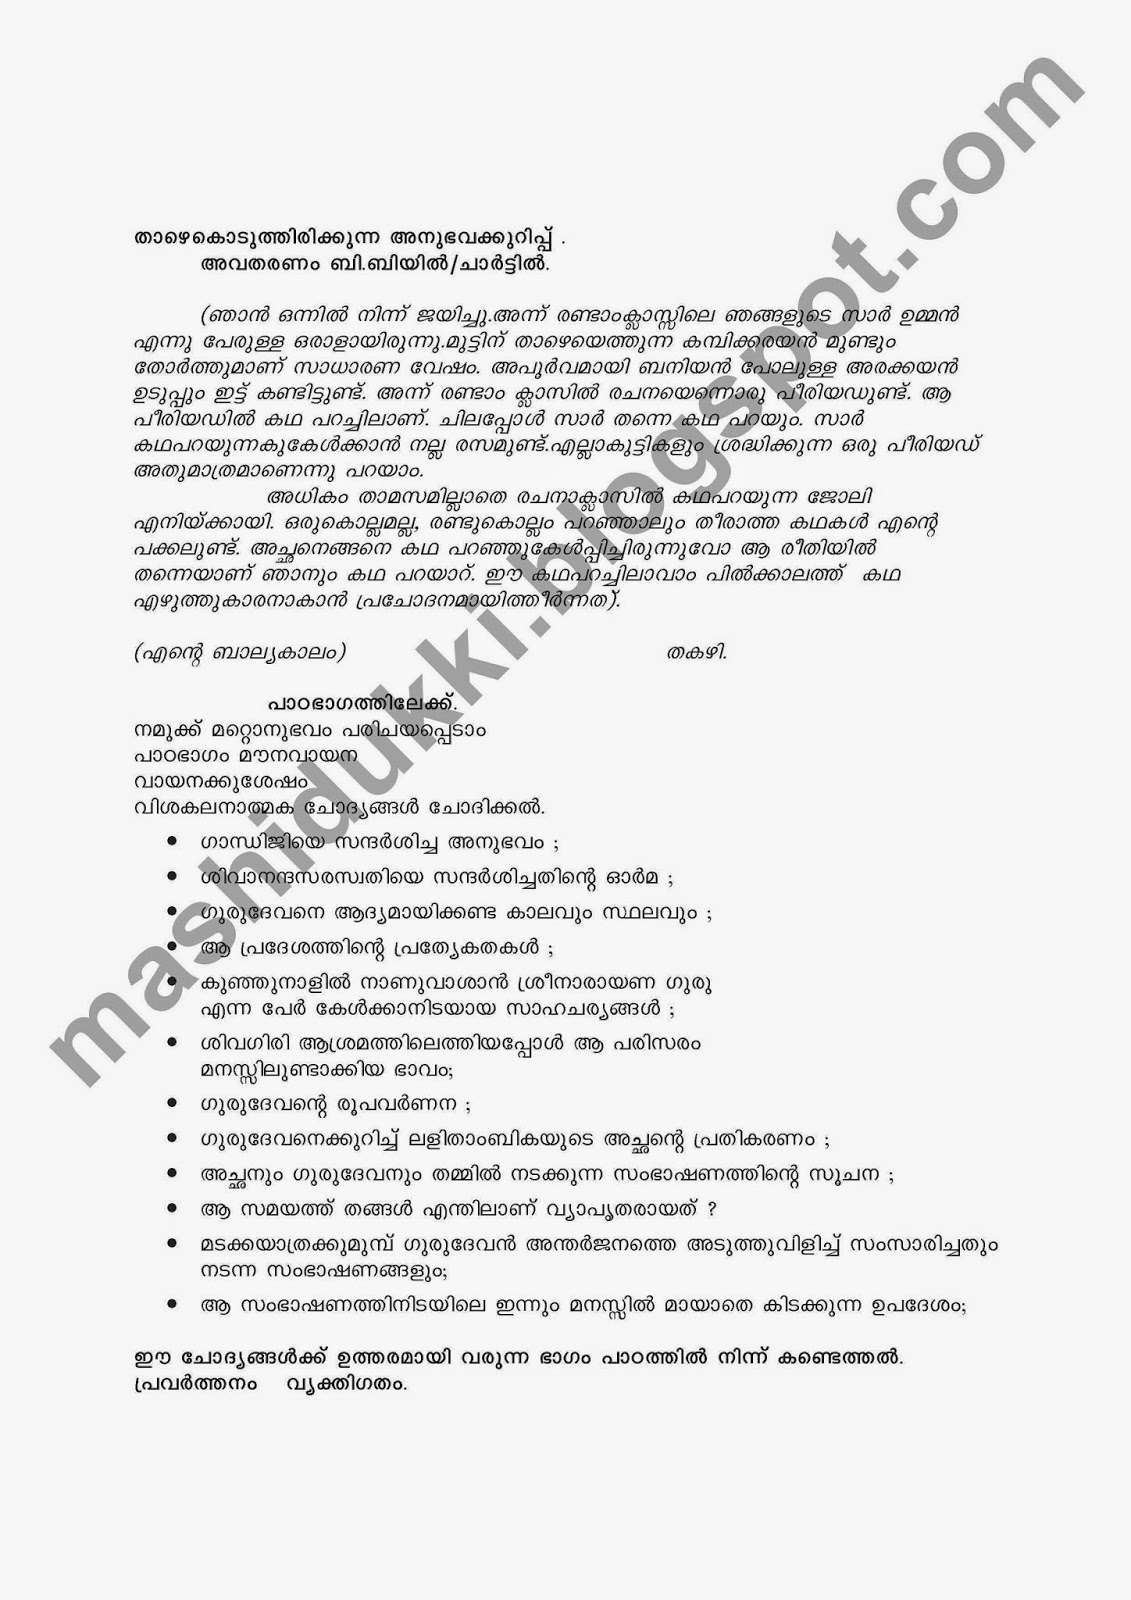 Malayalam Mash: Teaching Manual std 7